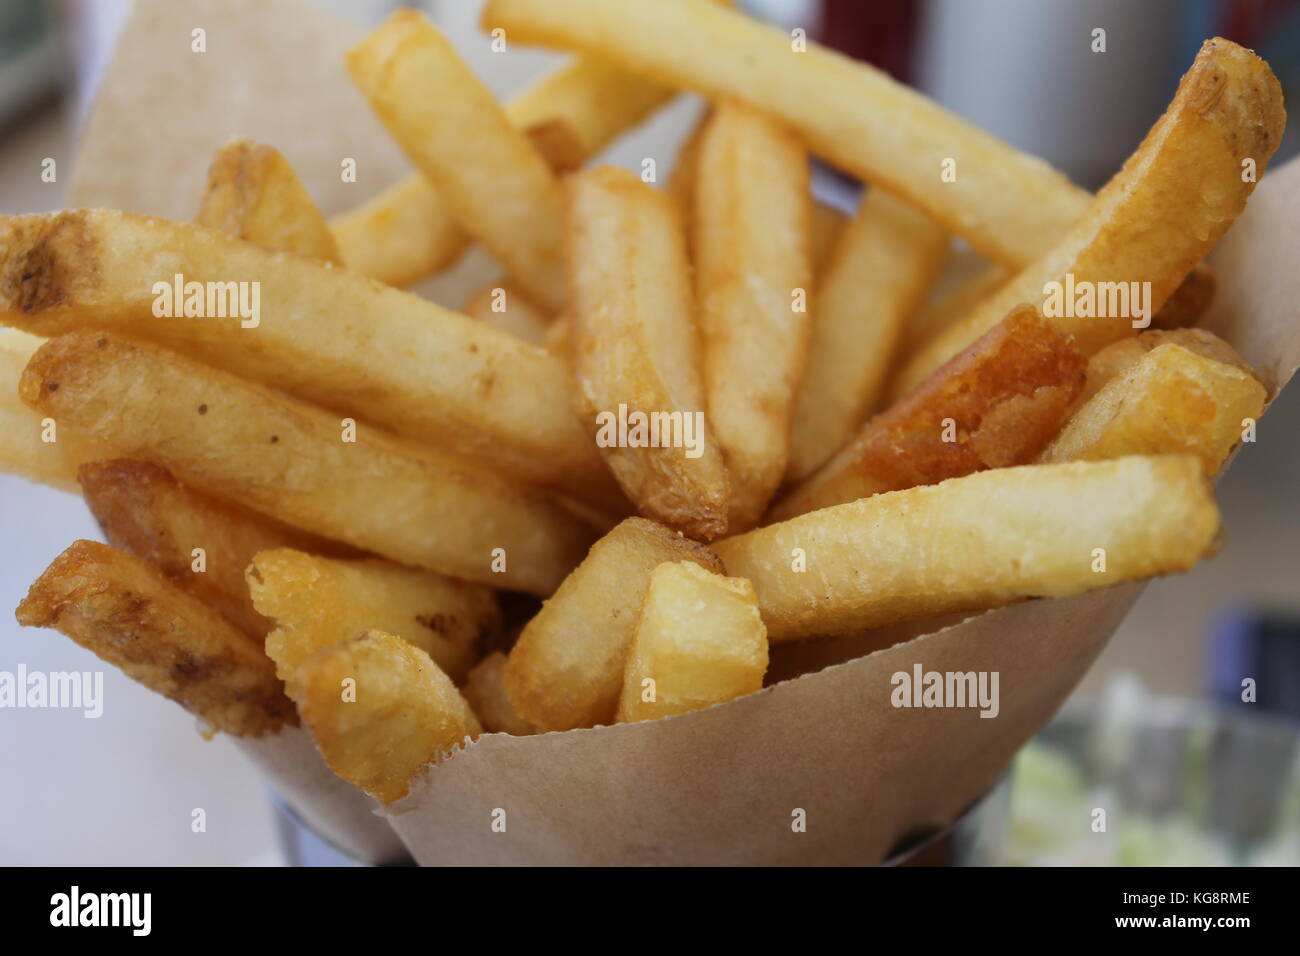 Fresh cut french fries in a brown paper cone - Stock Image